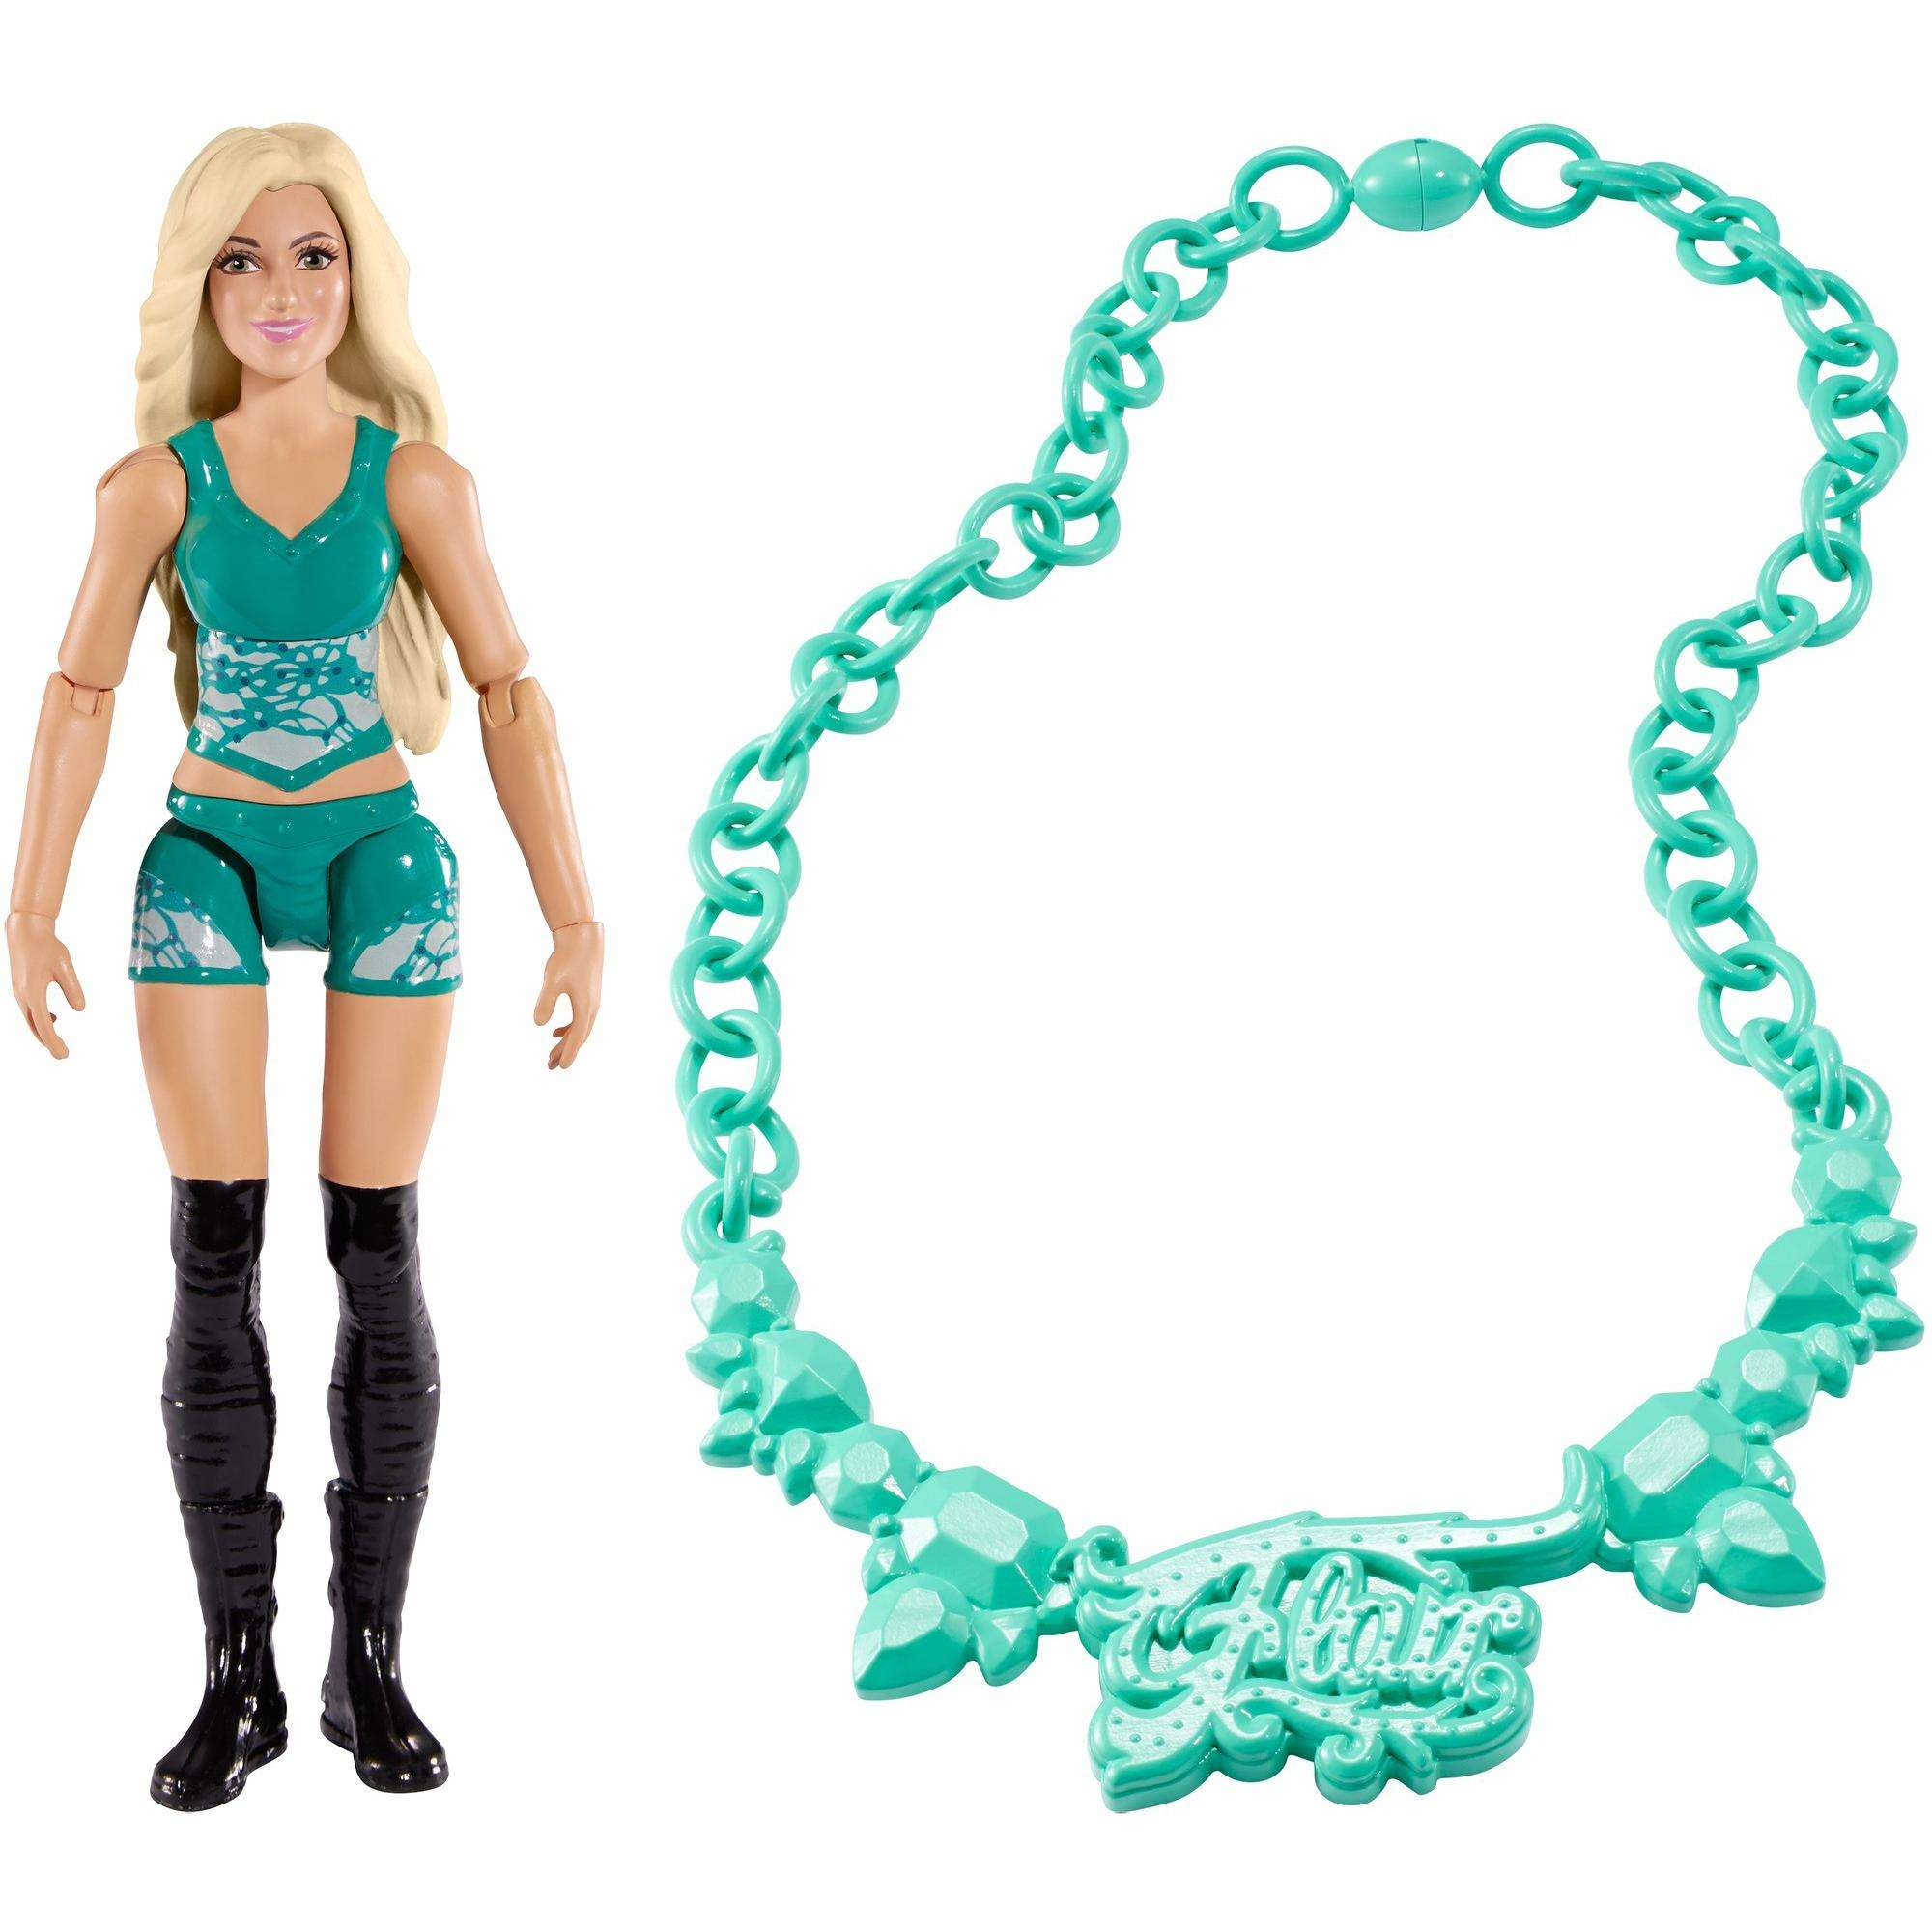 WWE Superstars Charlotte Flair Pack: 6-inch Action Figure & Fan Accessory